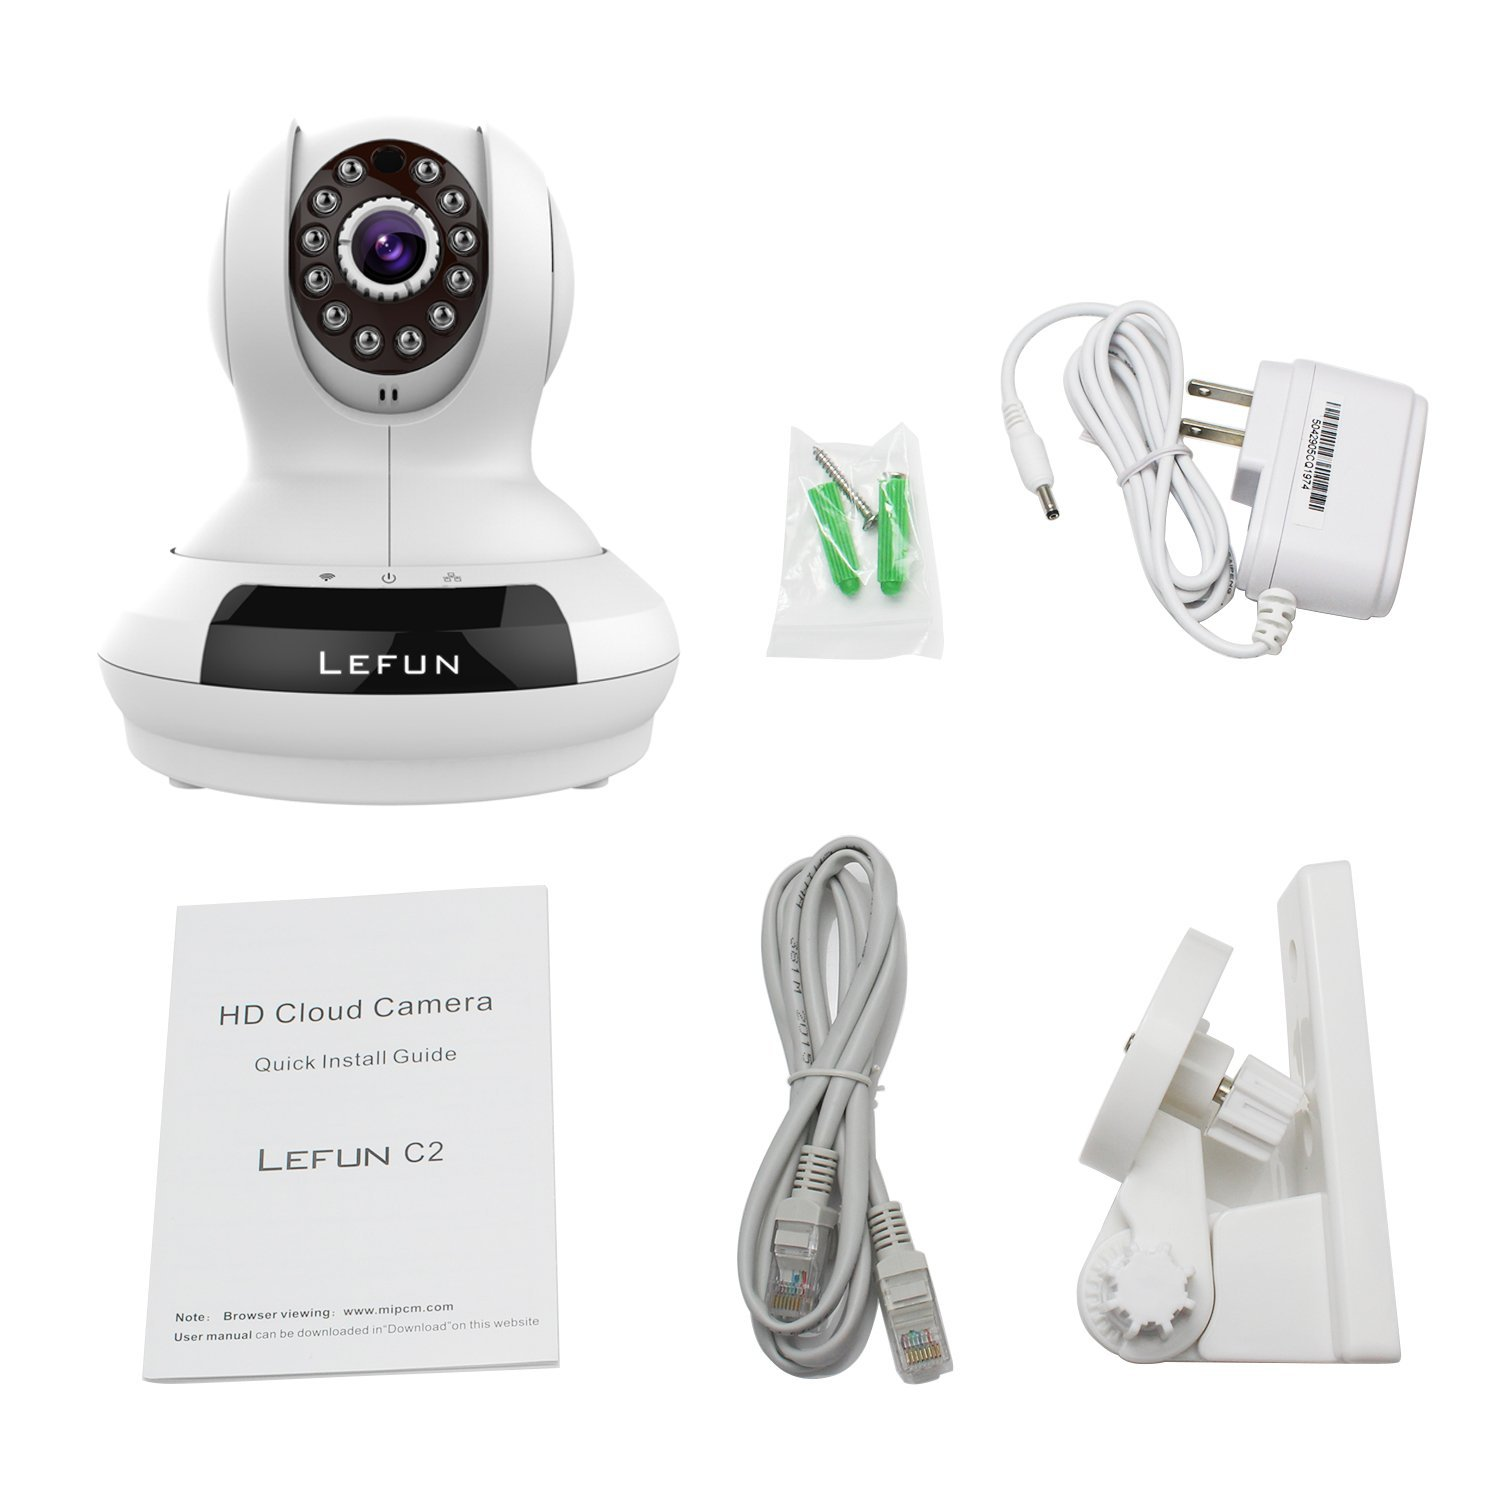 LeFun Night Vision Video Security